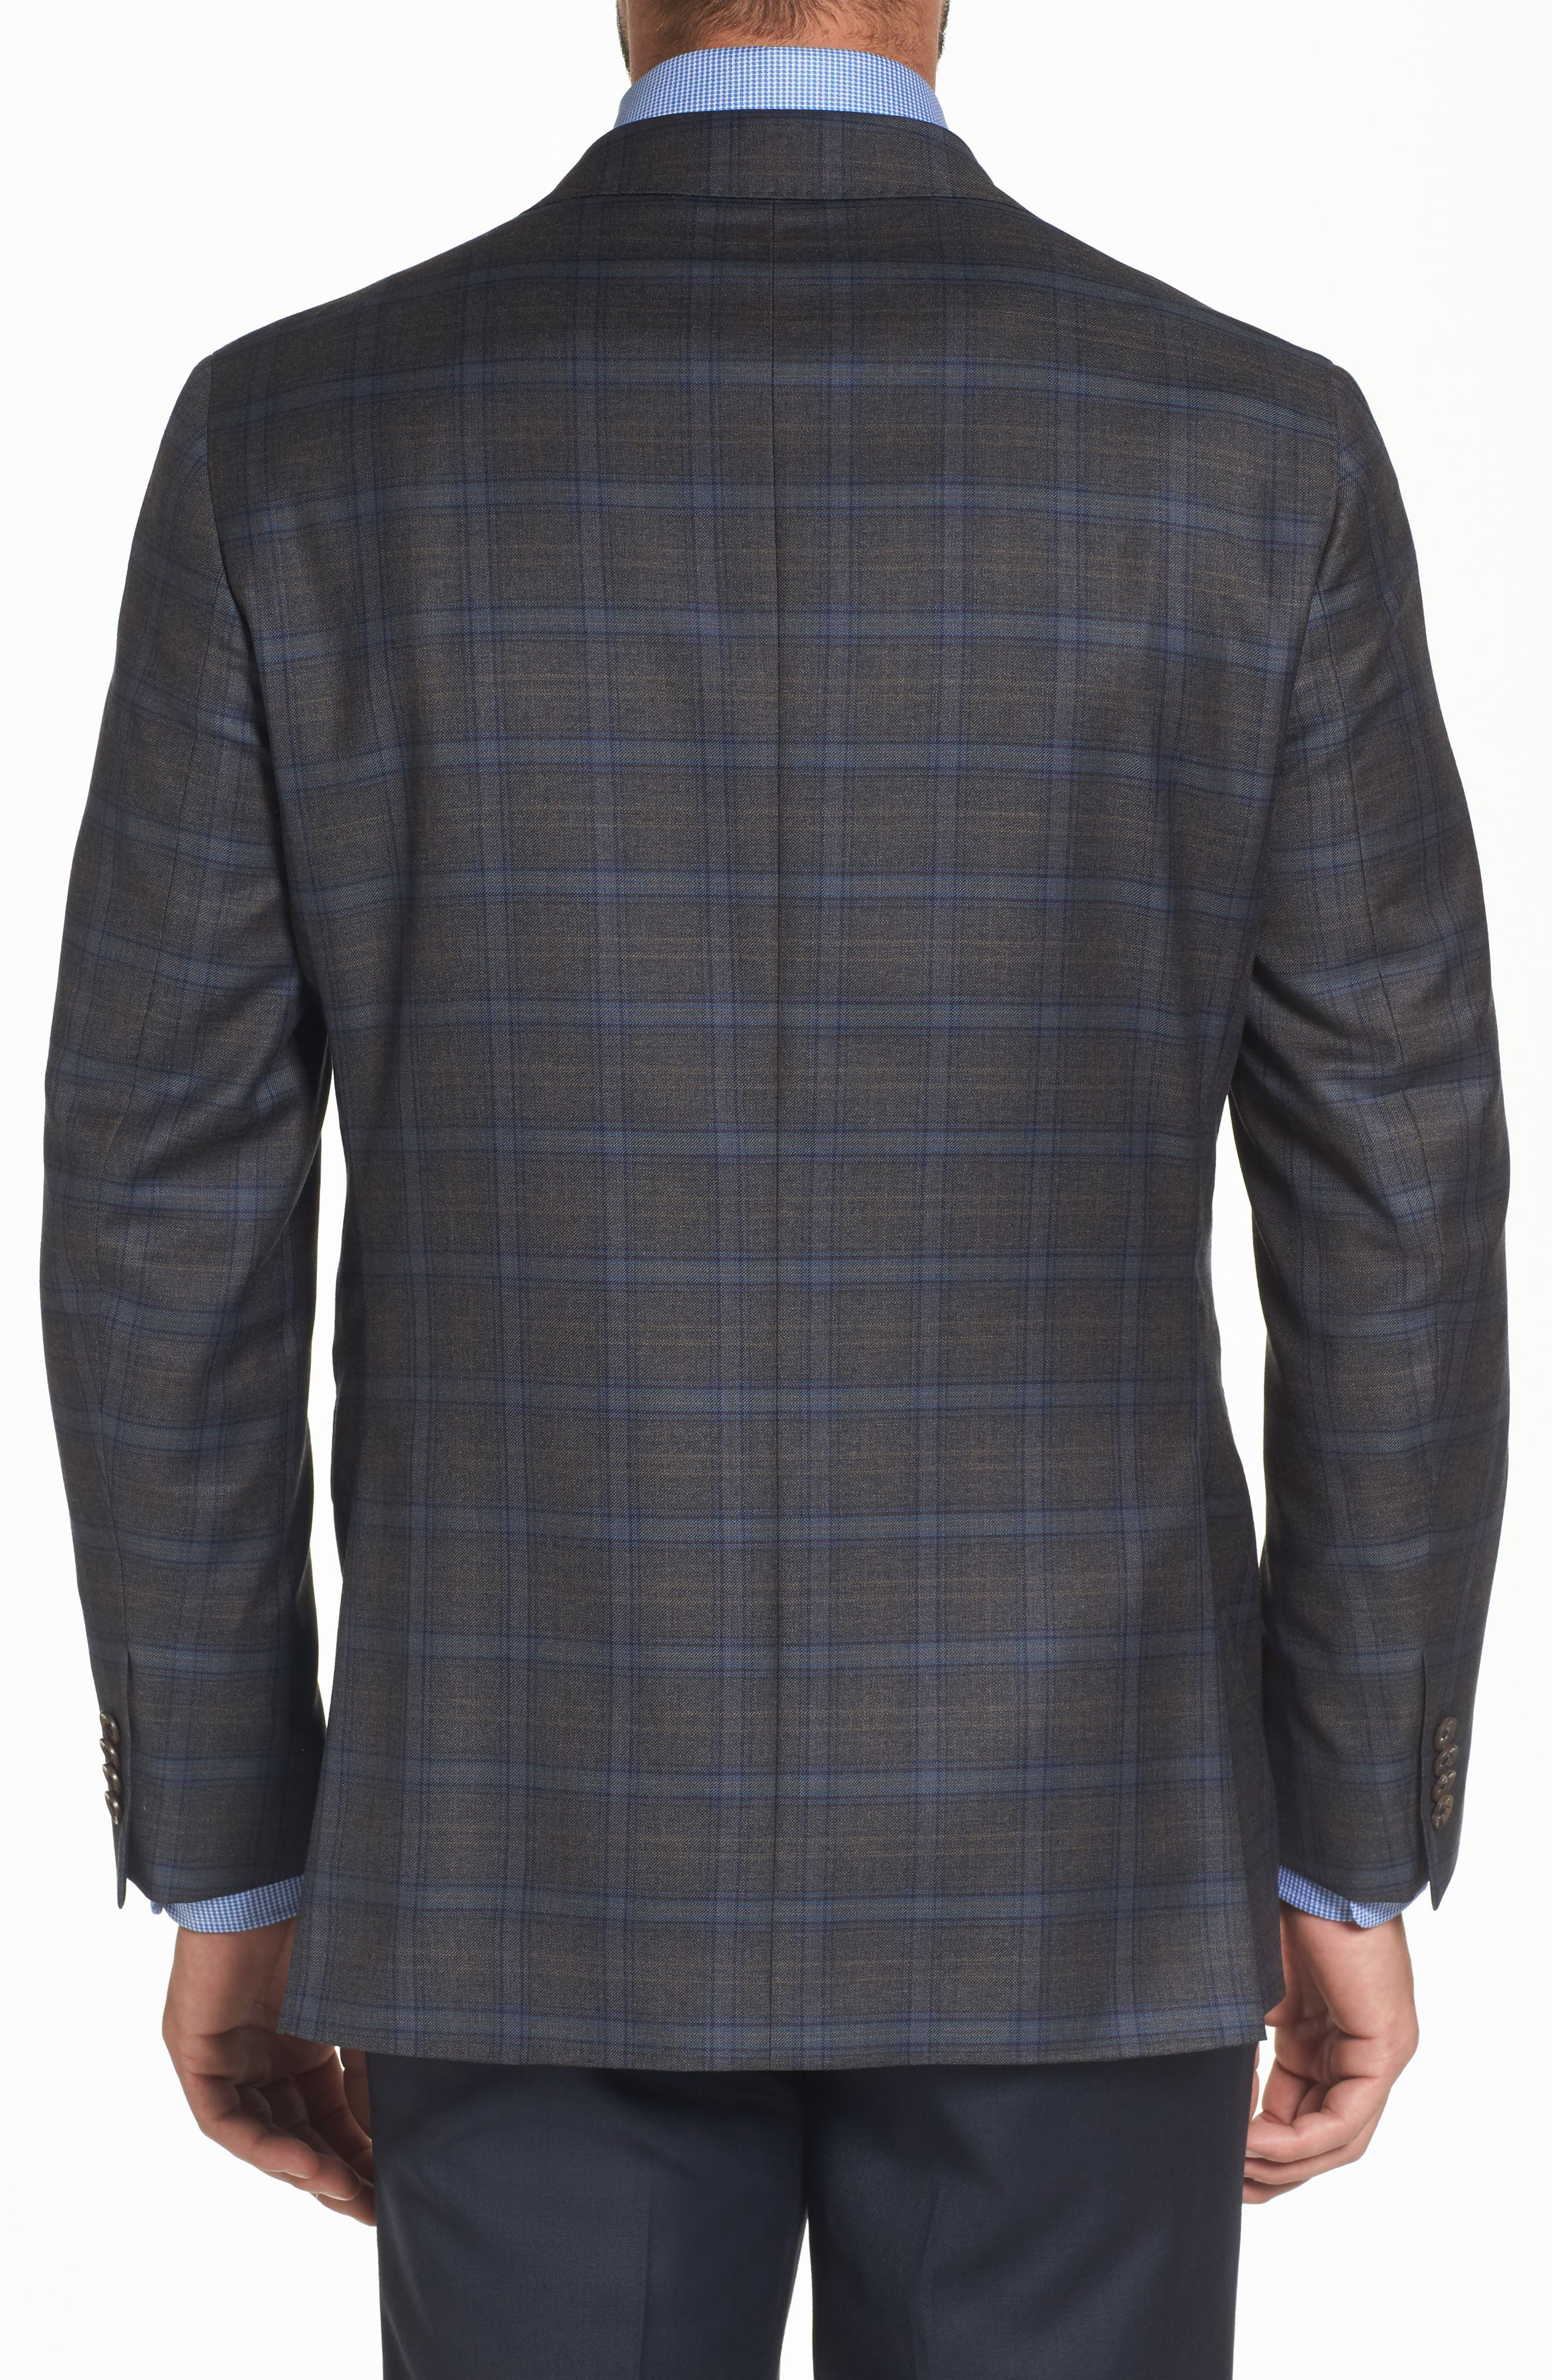 Arnold Classic Fit Plaid Wool Sport Coat,                             Alternate thumbnail 2, color,                             020